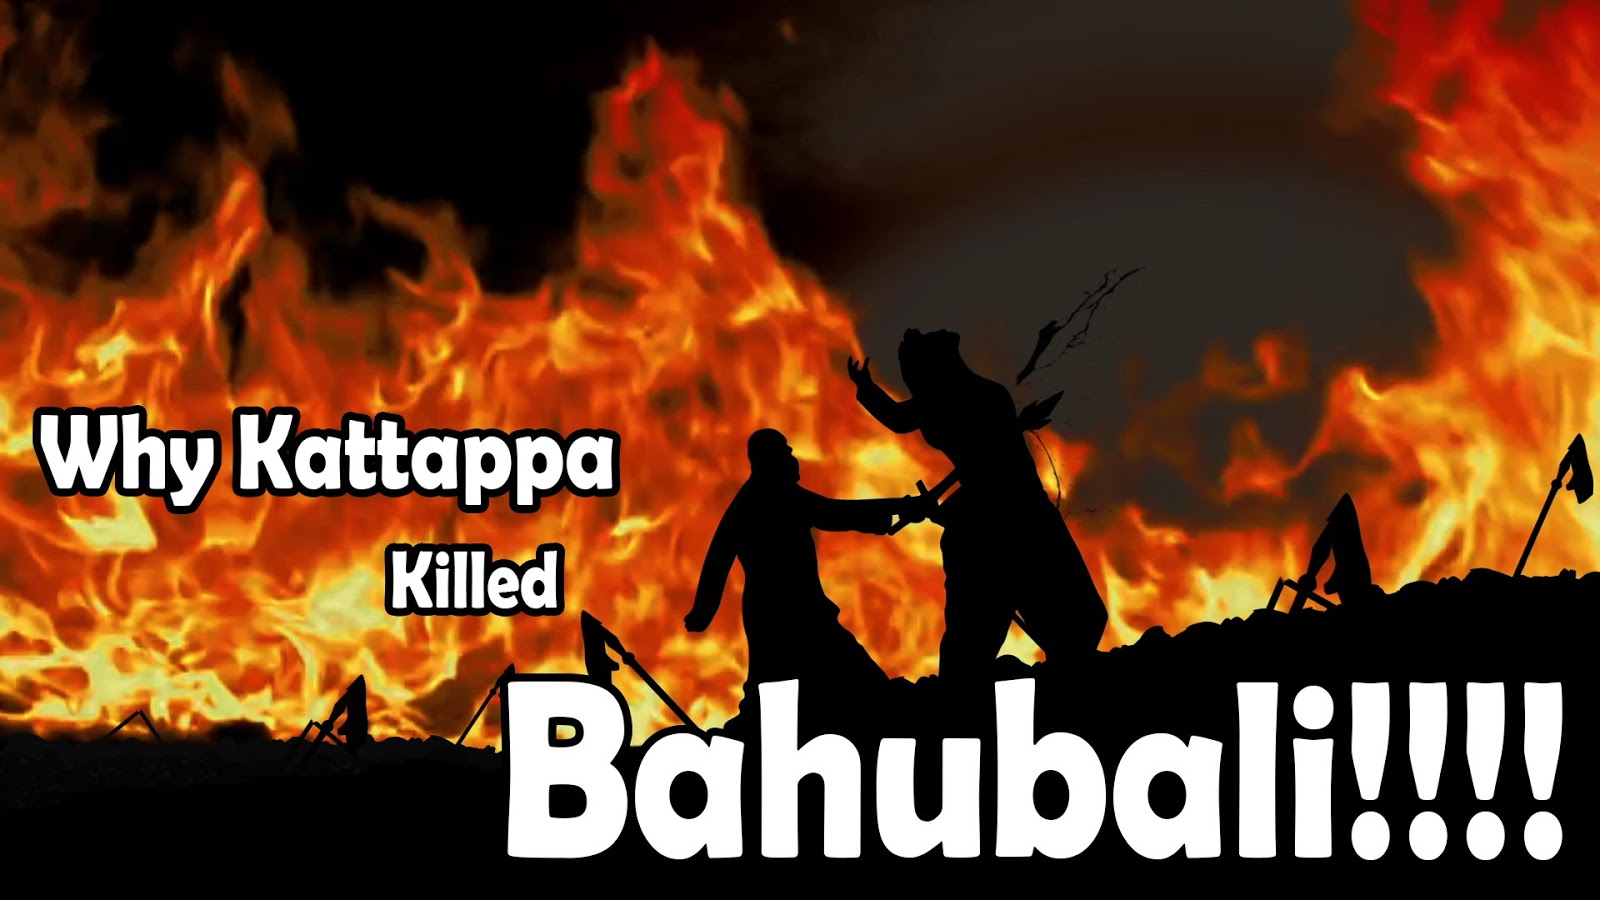 Why Kattappa Killed Bahubali?